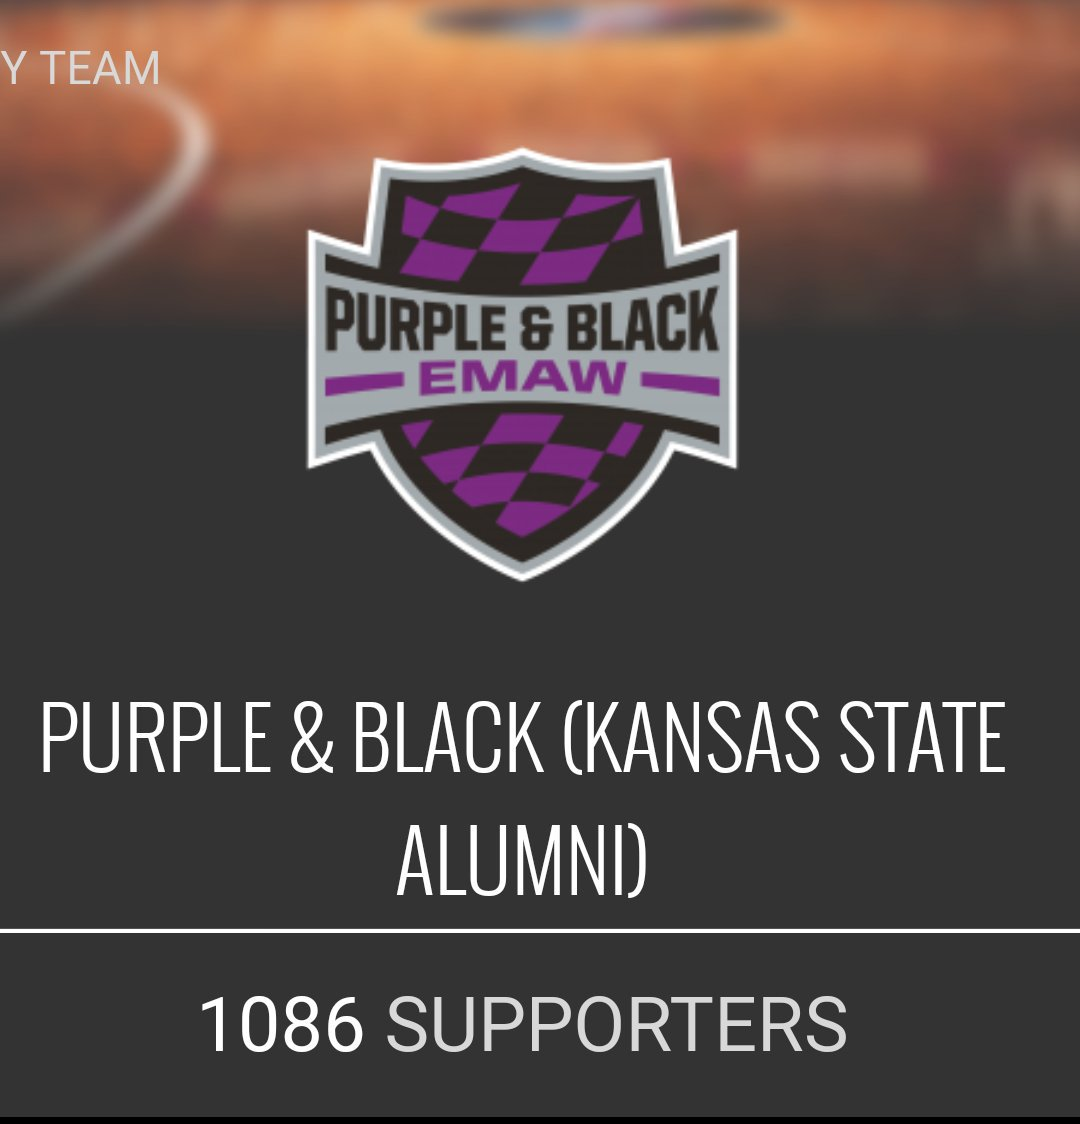 @PurpleBlack2K19 you guys have over 1000 now, let's keep it going. #EMAW #TBT2019 https://t.co/pDJWlwkuDj